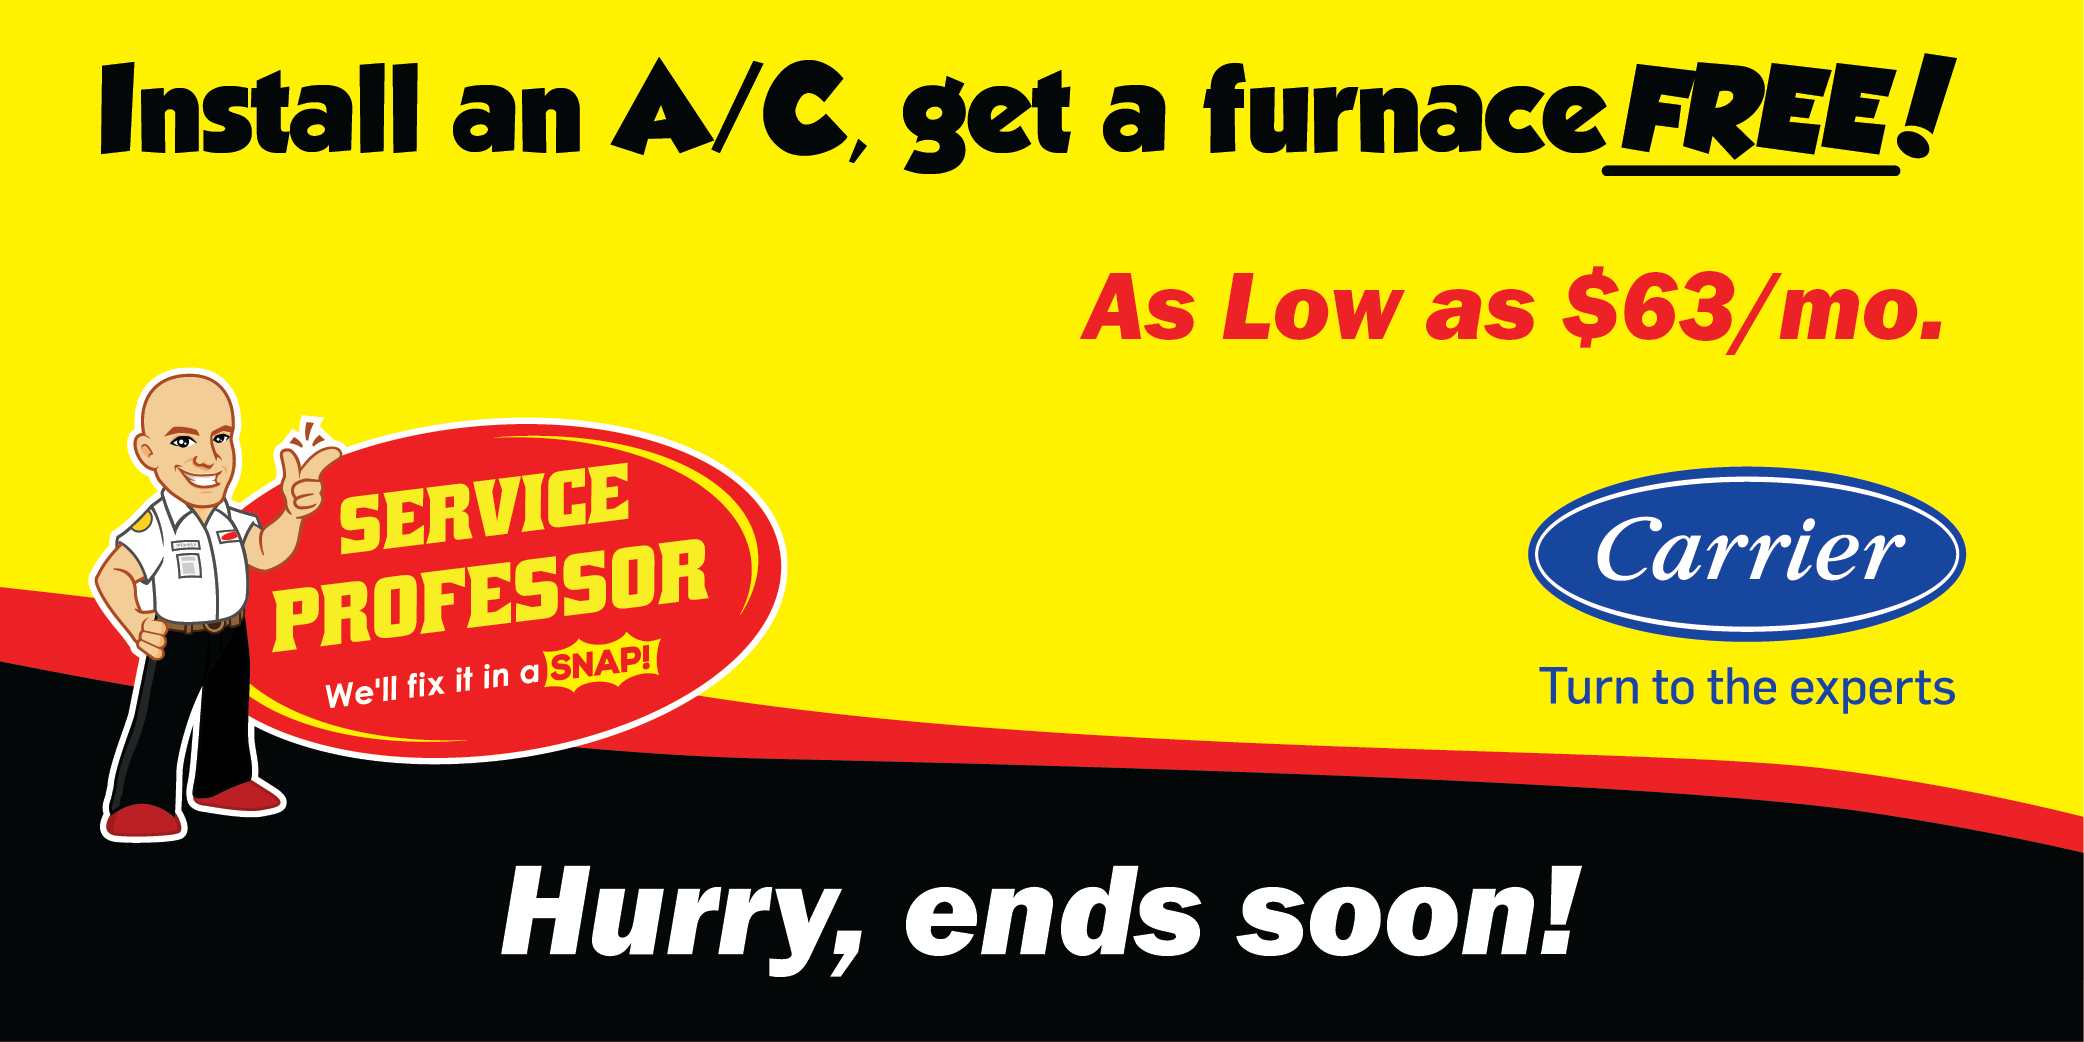 $79 Furnace Evaluation Coupon